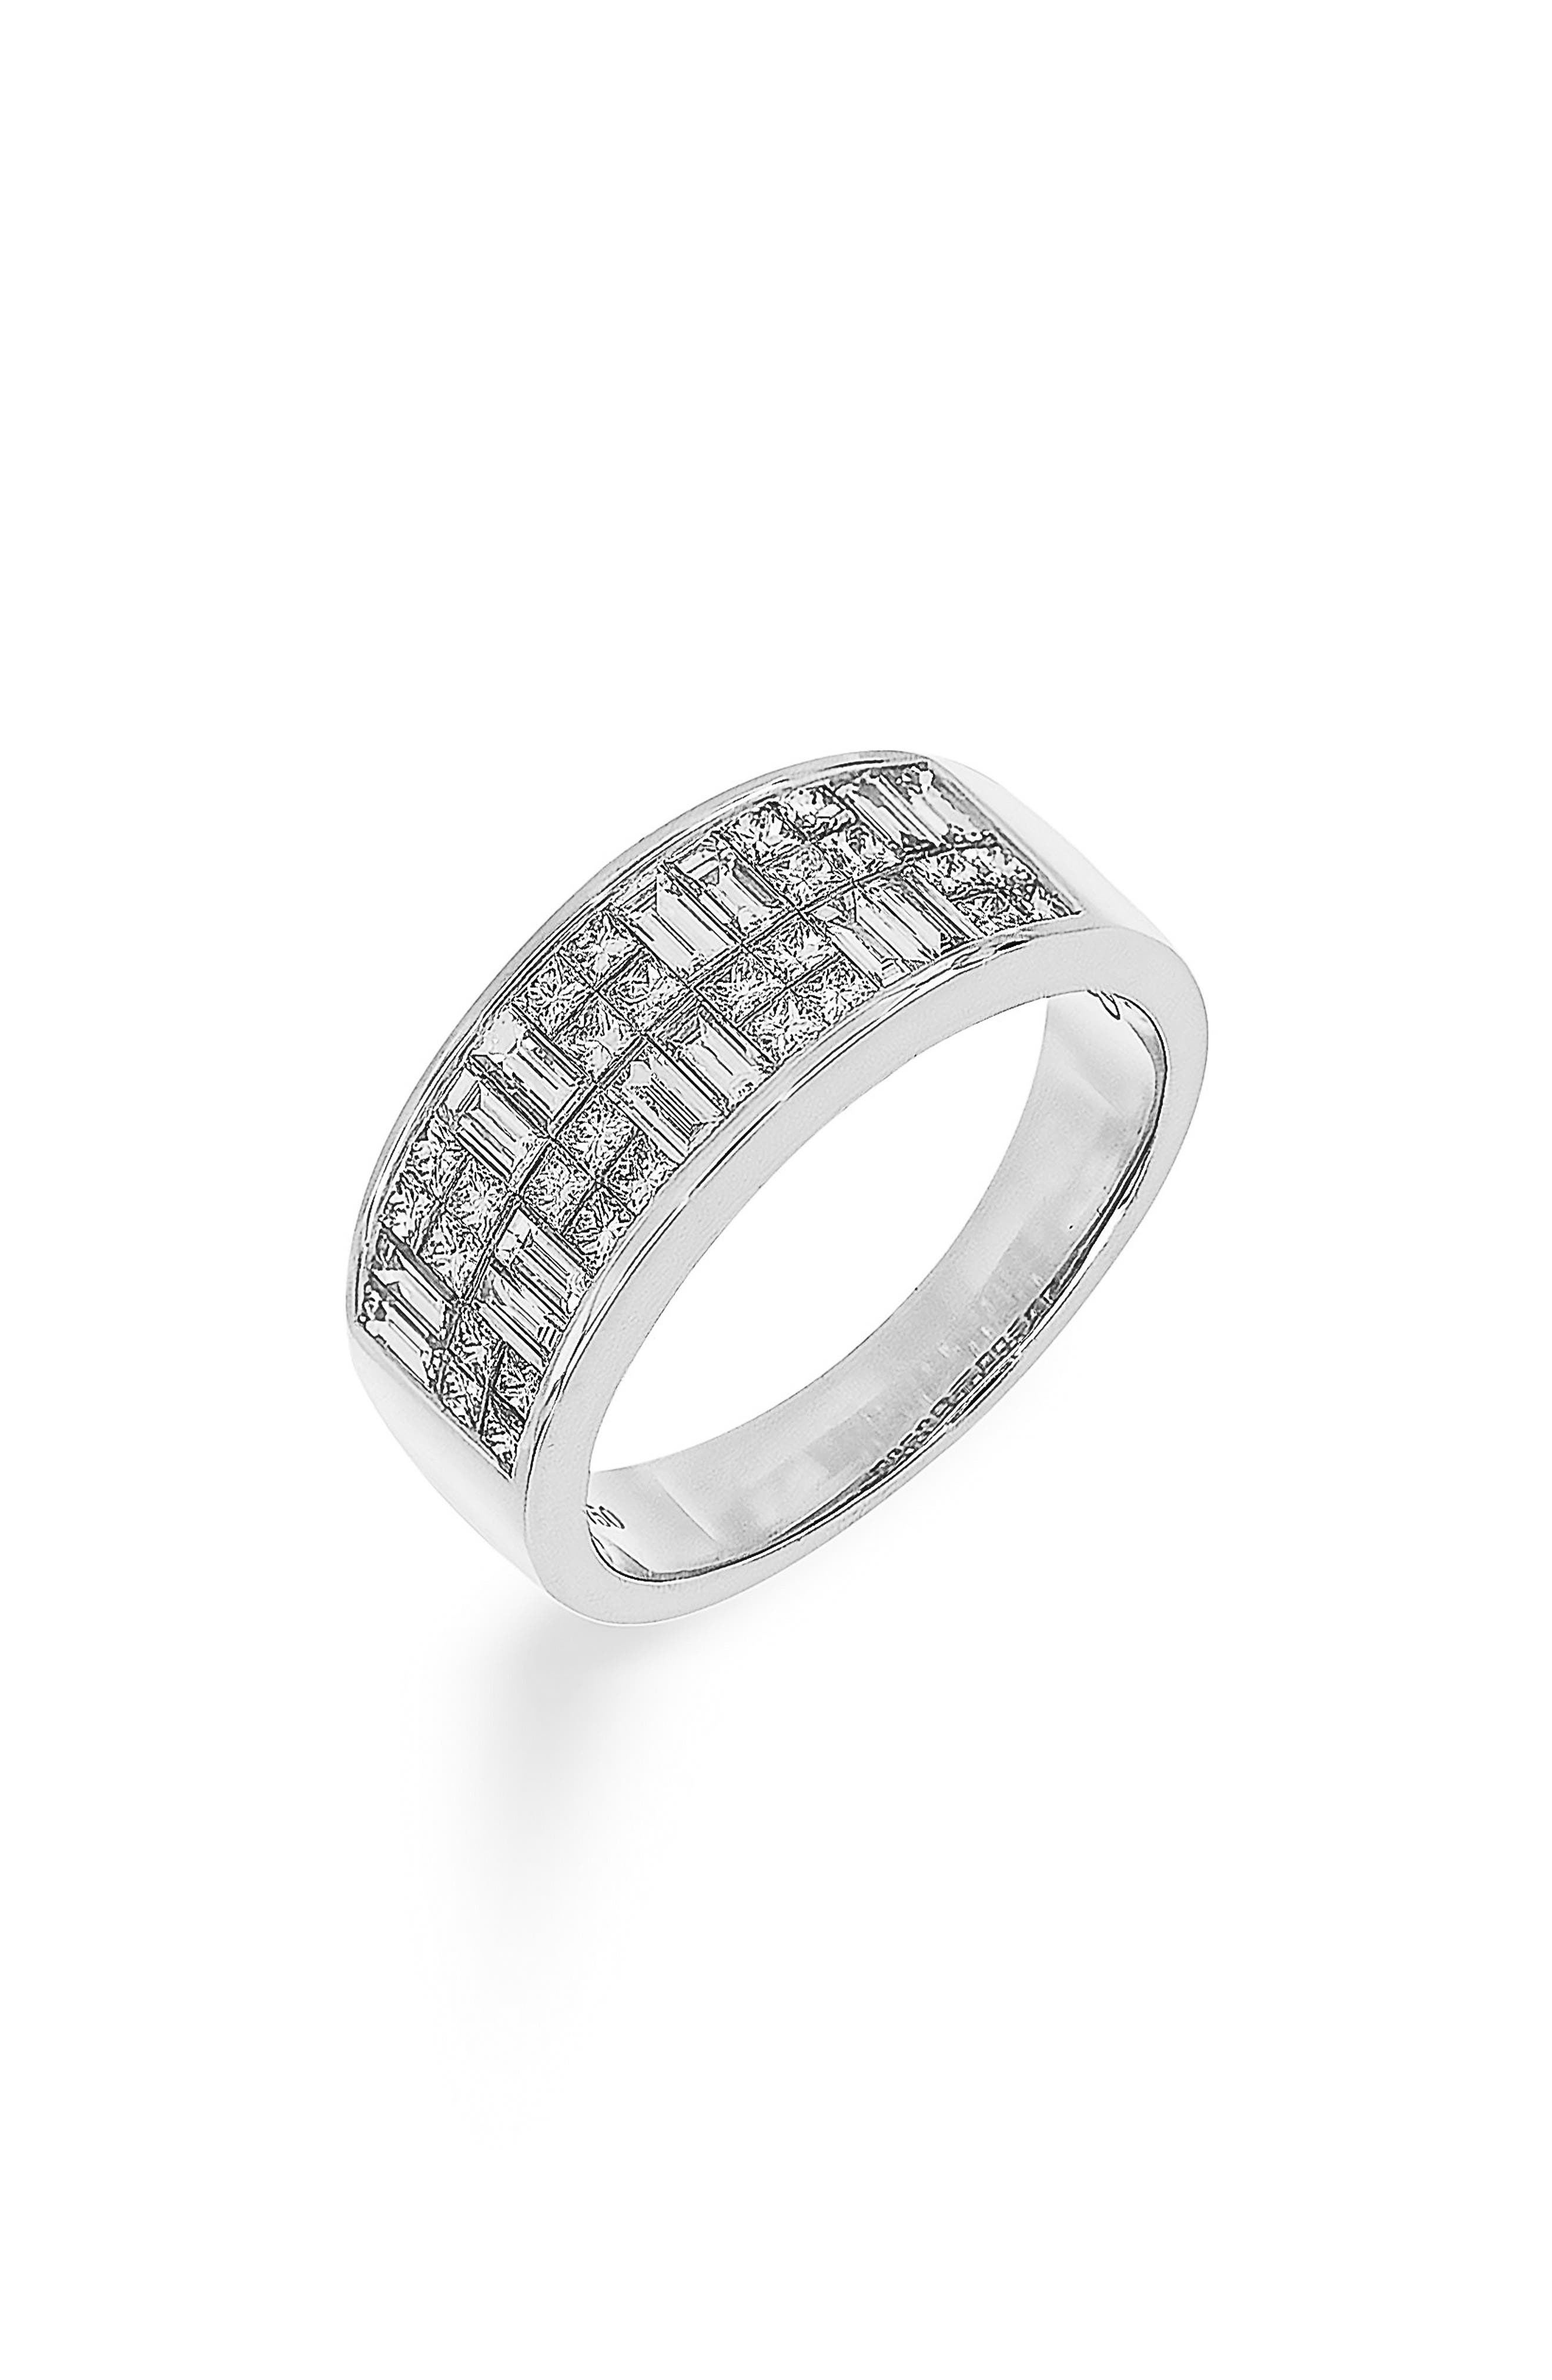 Main Image - Bony Levy Mixed Shape Diamond Ring (Nordstrom Exclusive)